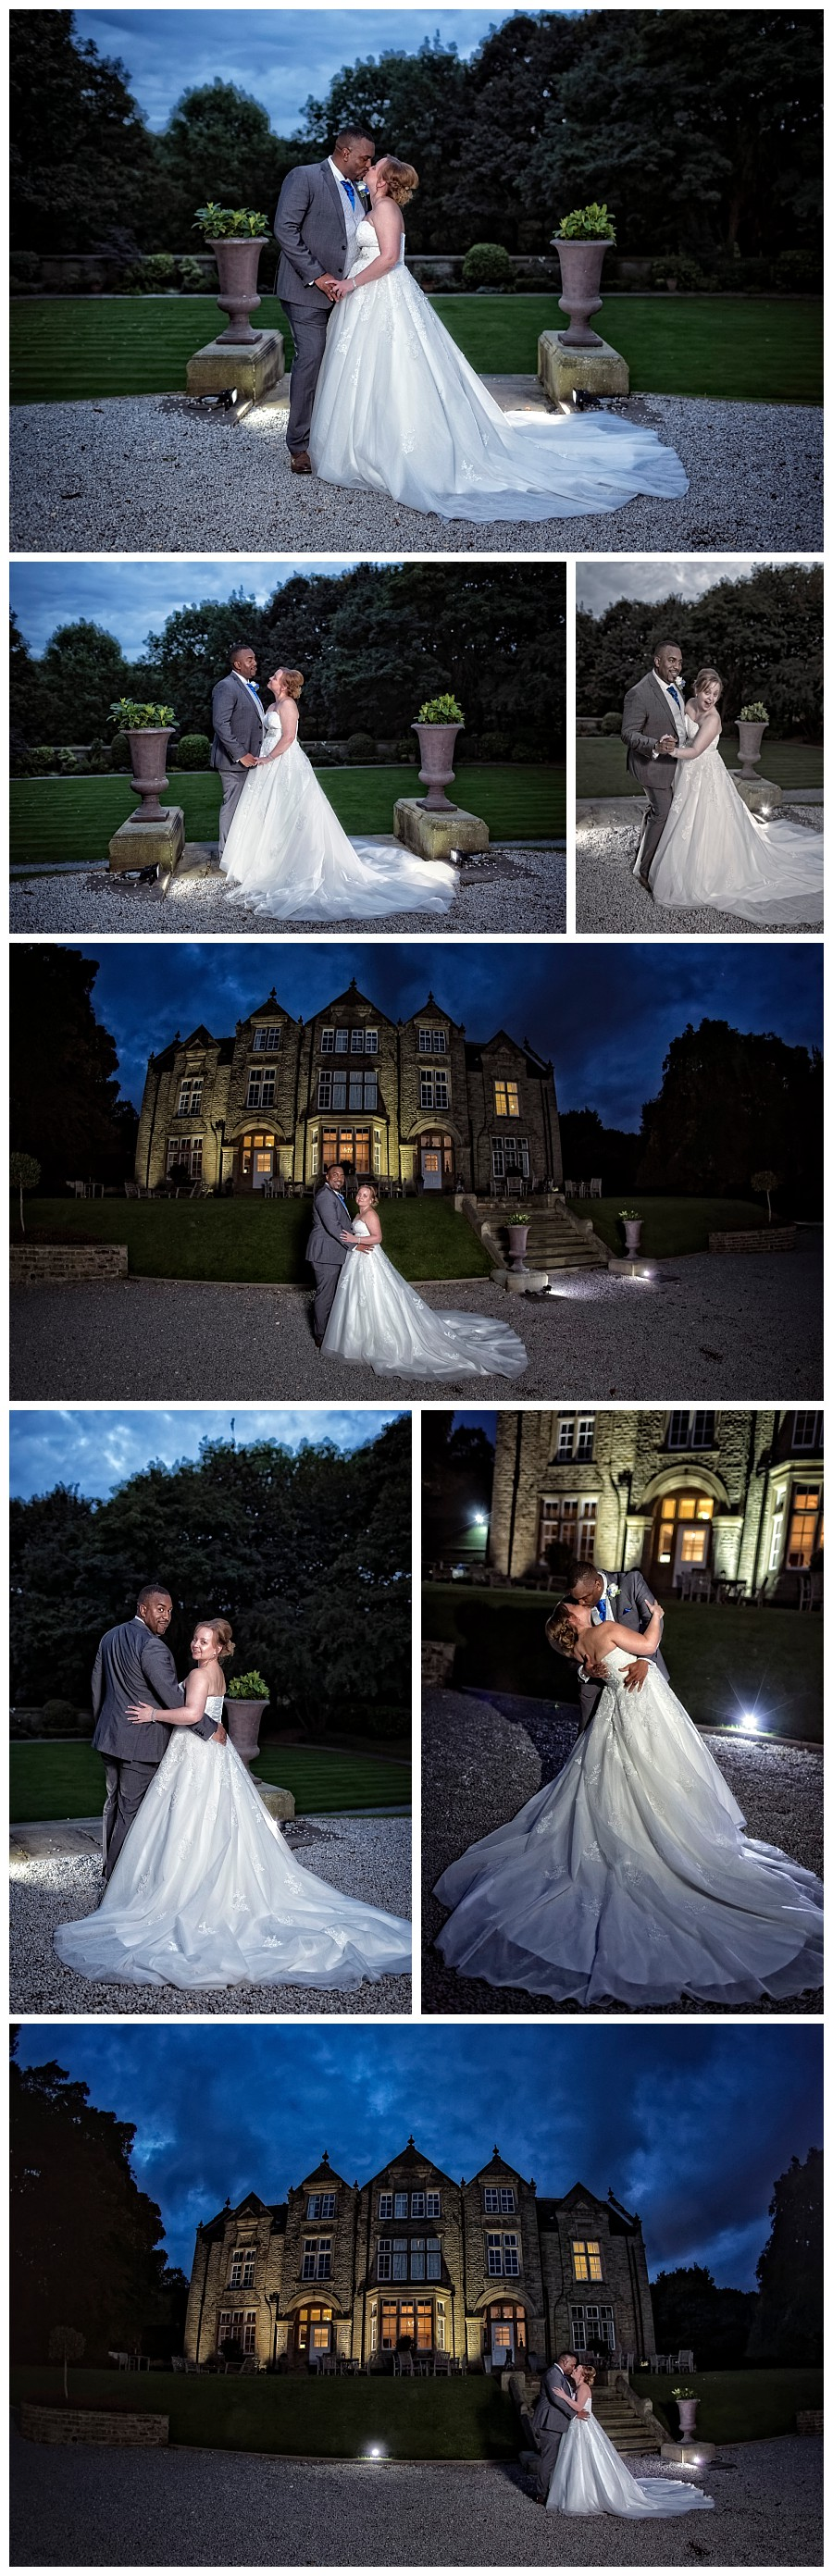 Wedding Photography Woodlands Hotel Leeds, woodlands hotel Yorkshire wedding photography, best wedding photographers for woodlands hotel, 79 Gelderd Rd, Gildersome, Leeds LS27 7LY